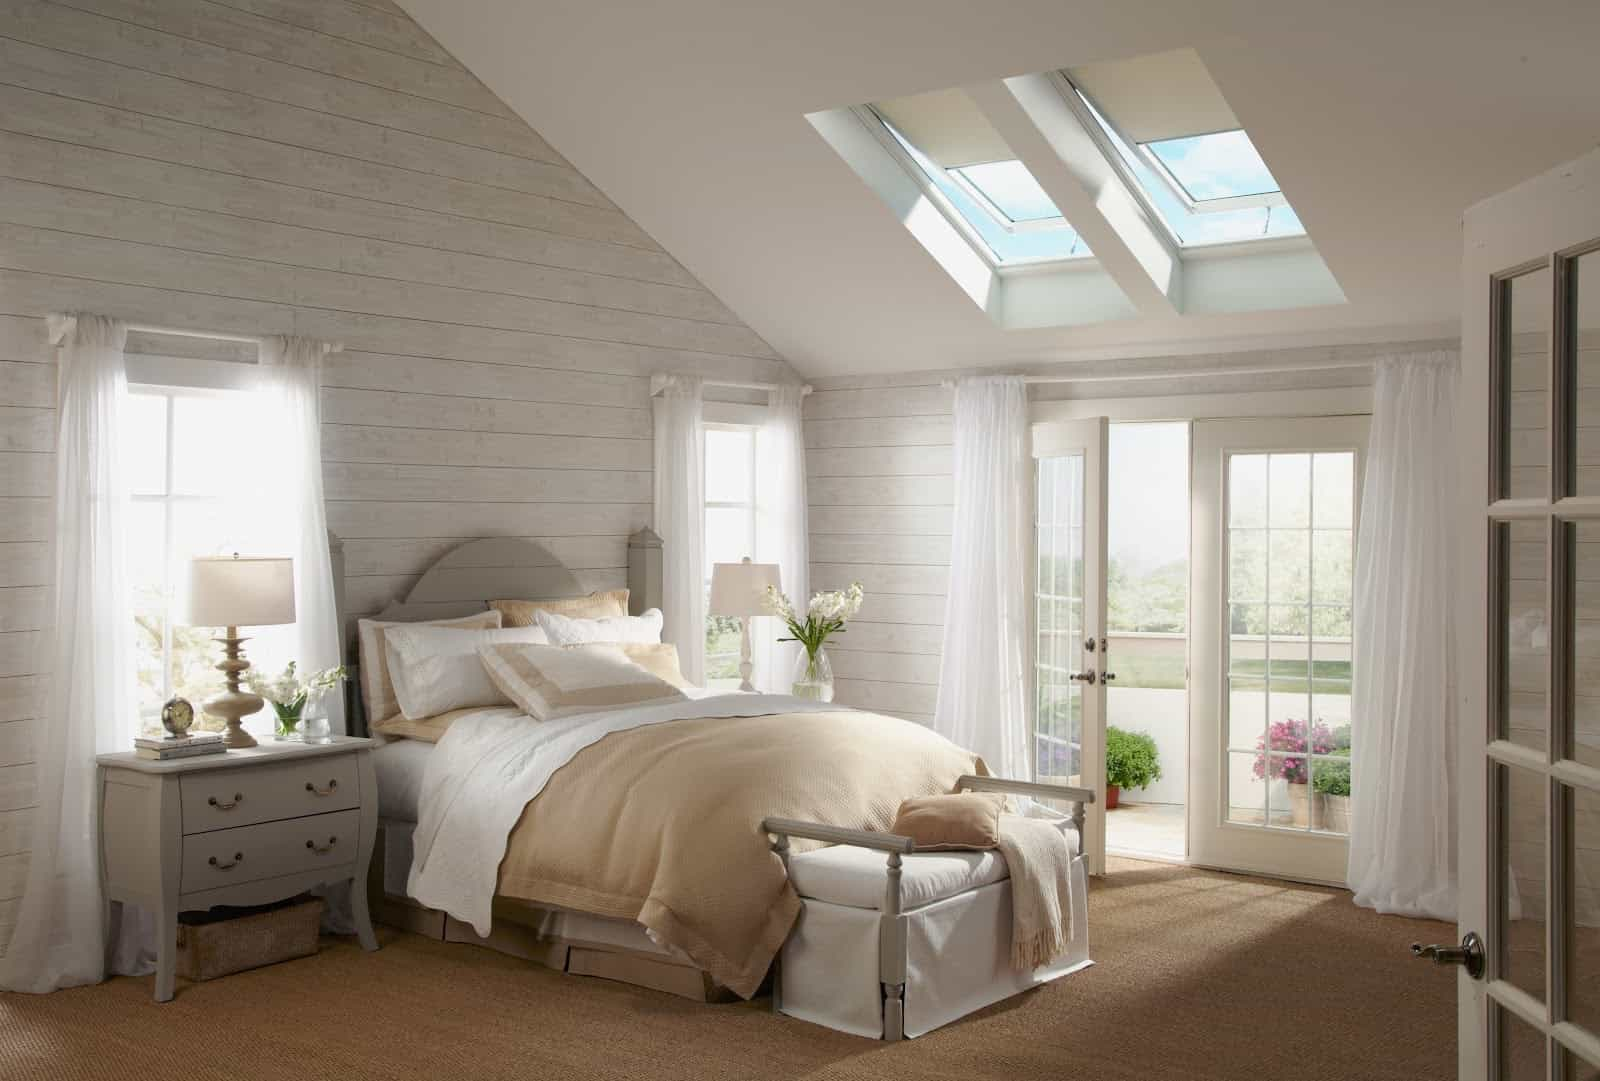 Vertical Skylight And Rooflight Blinds For Elegant Bedroom Interior (View 9 of 25)